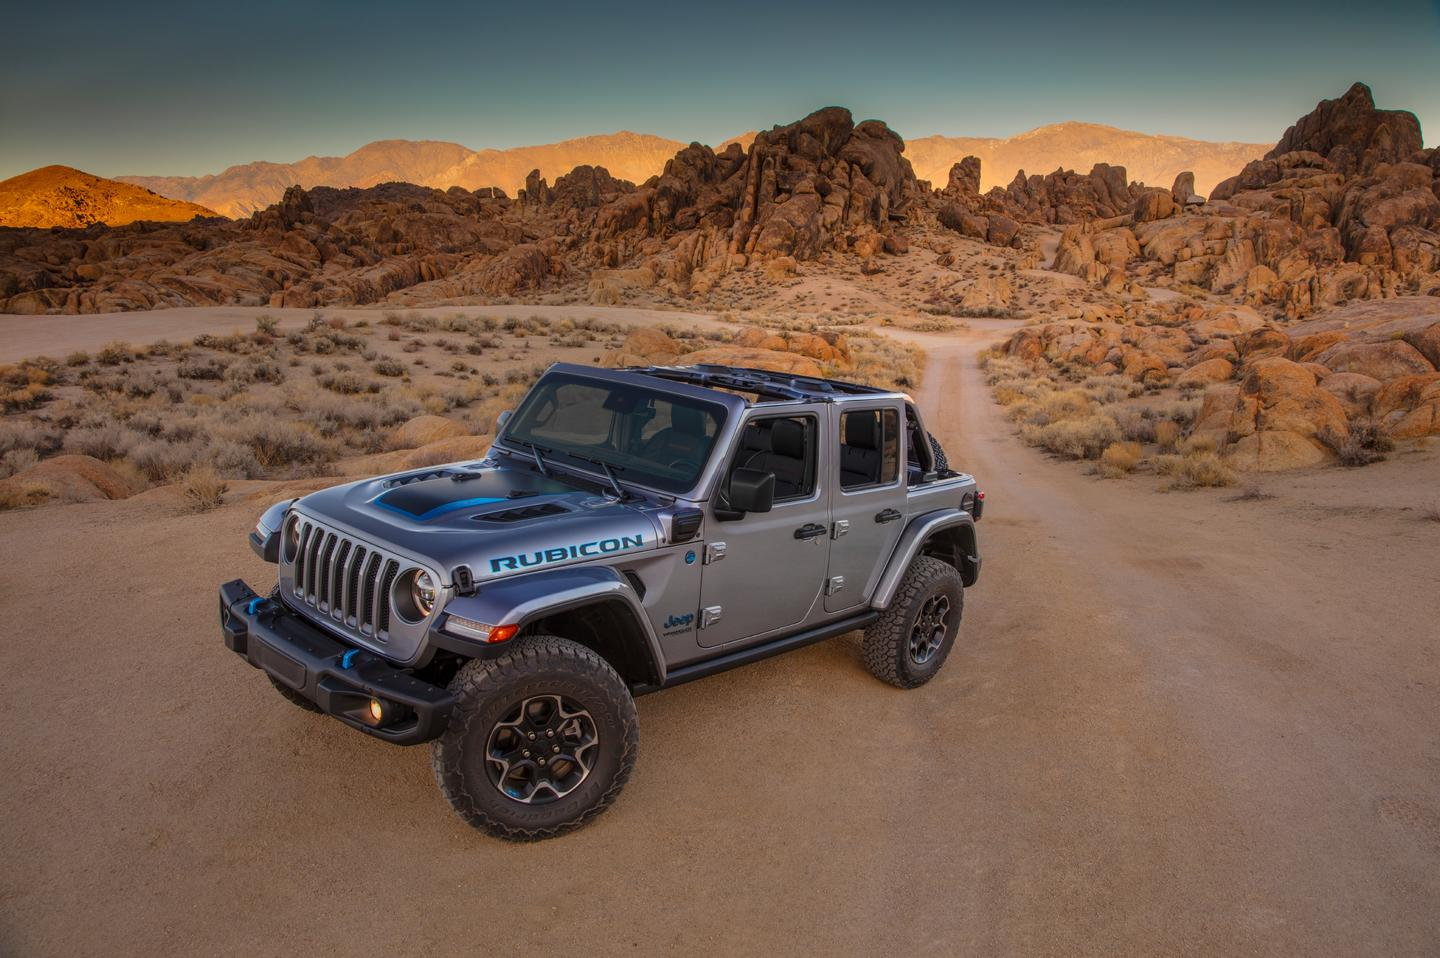 The Wrangler is an icon of off-road prowess and capability, and is the vehicle most people immediately associate with rugged outdoor adventures